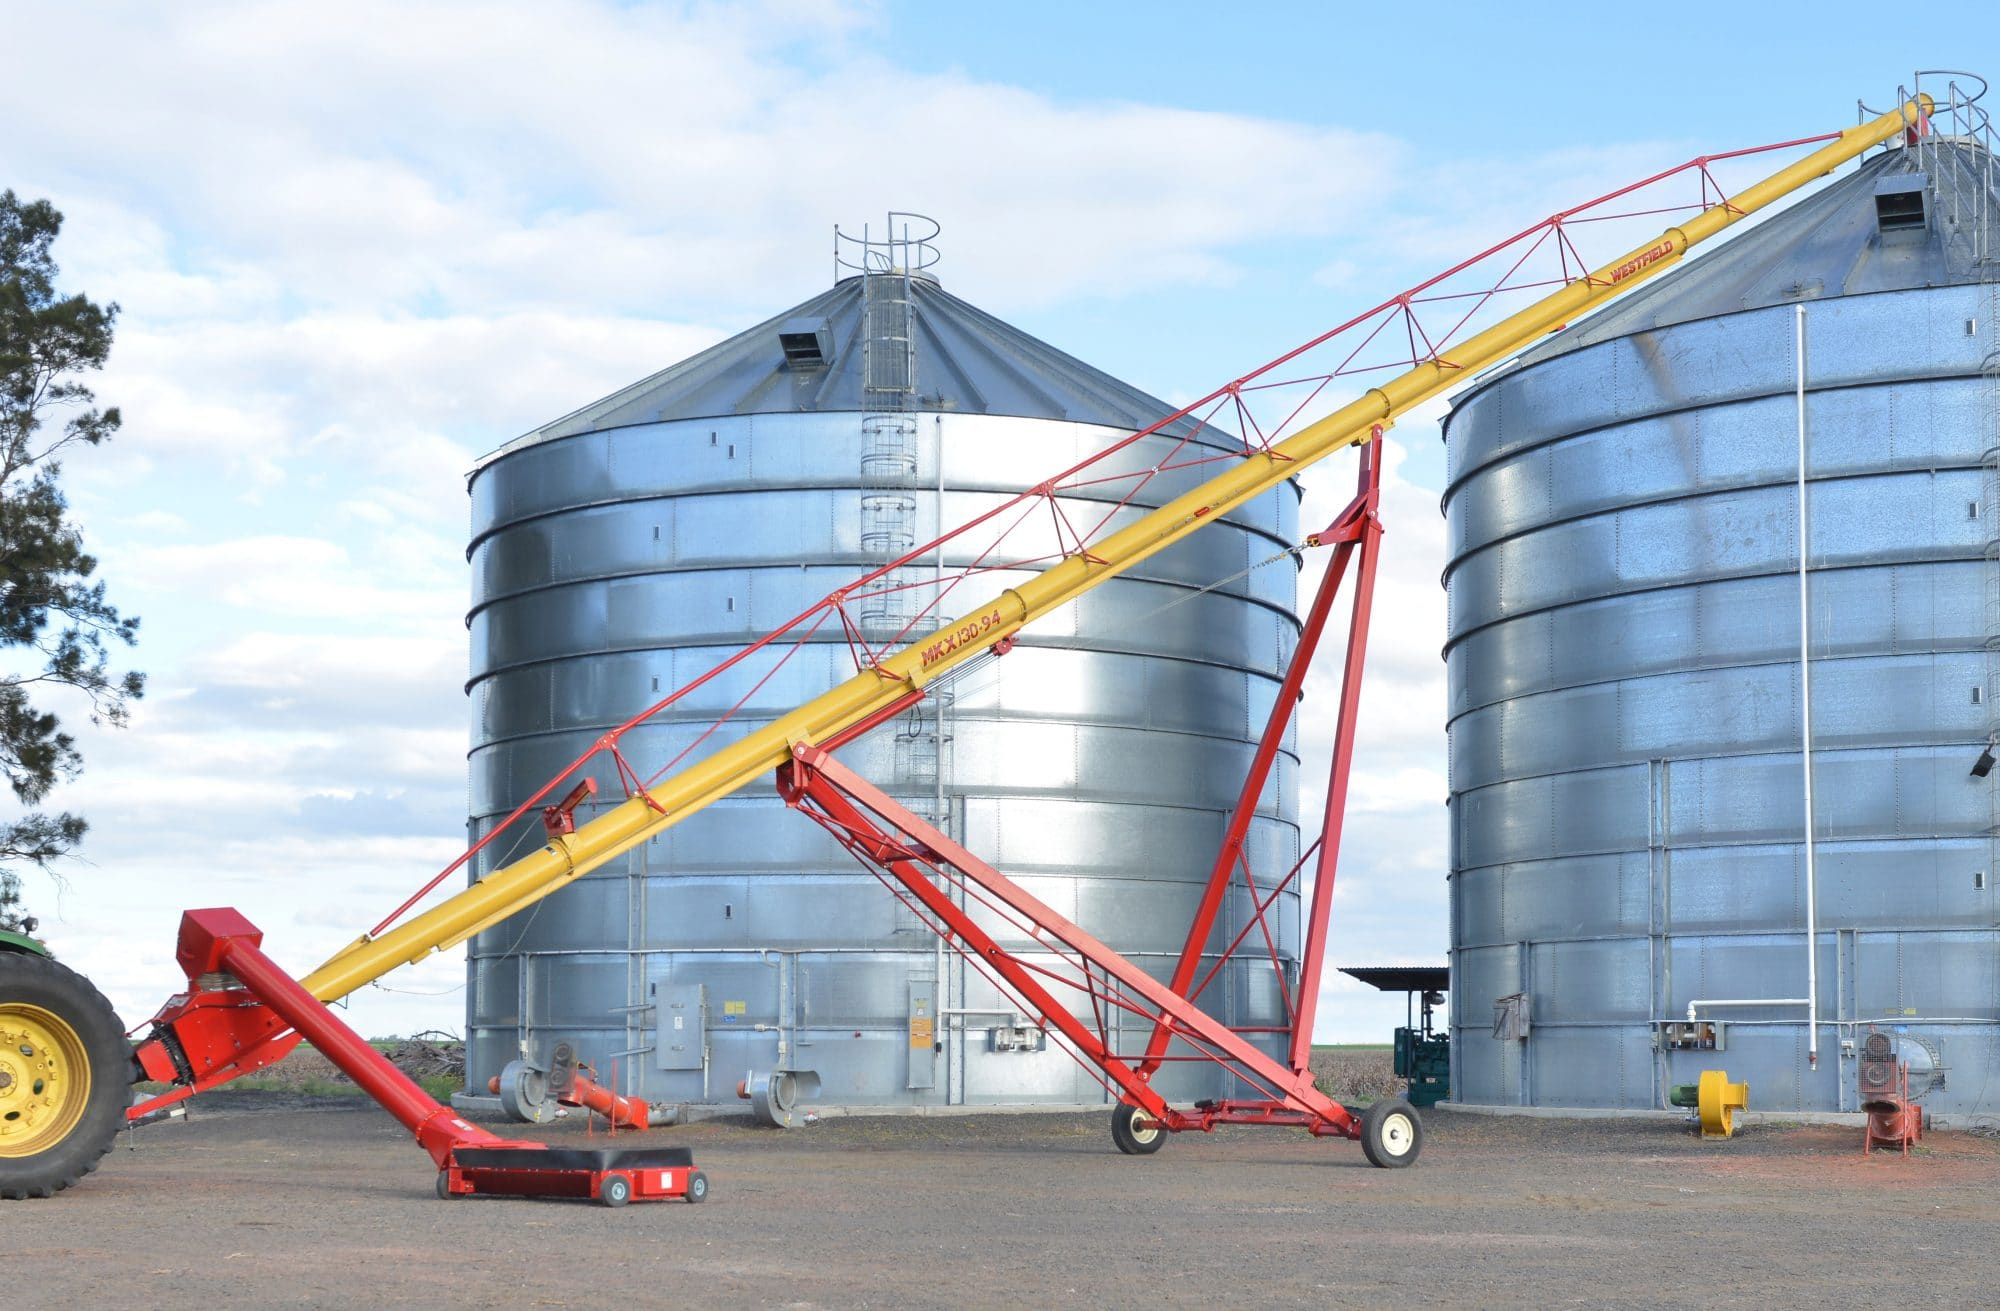 8 things to look for in a high quality grain auger_IMG